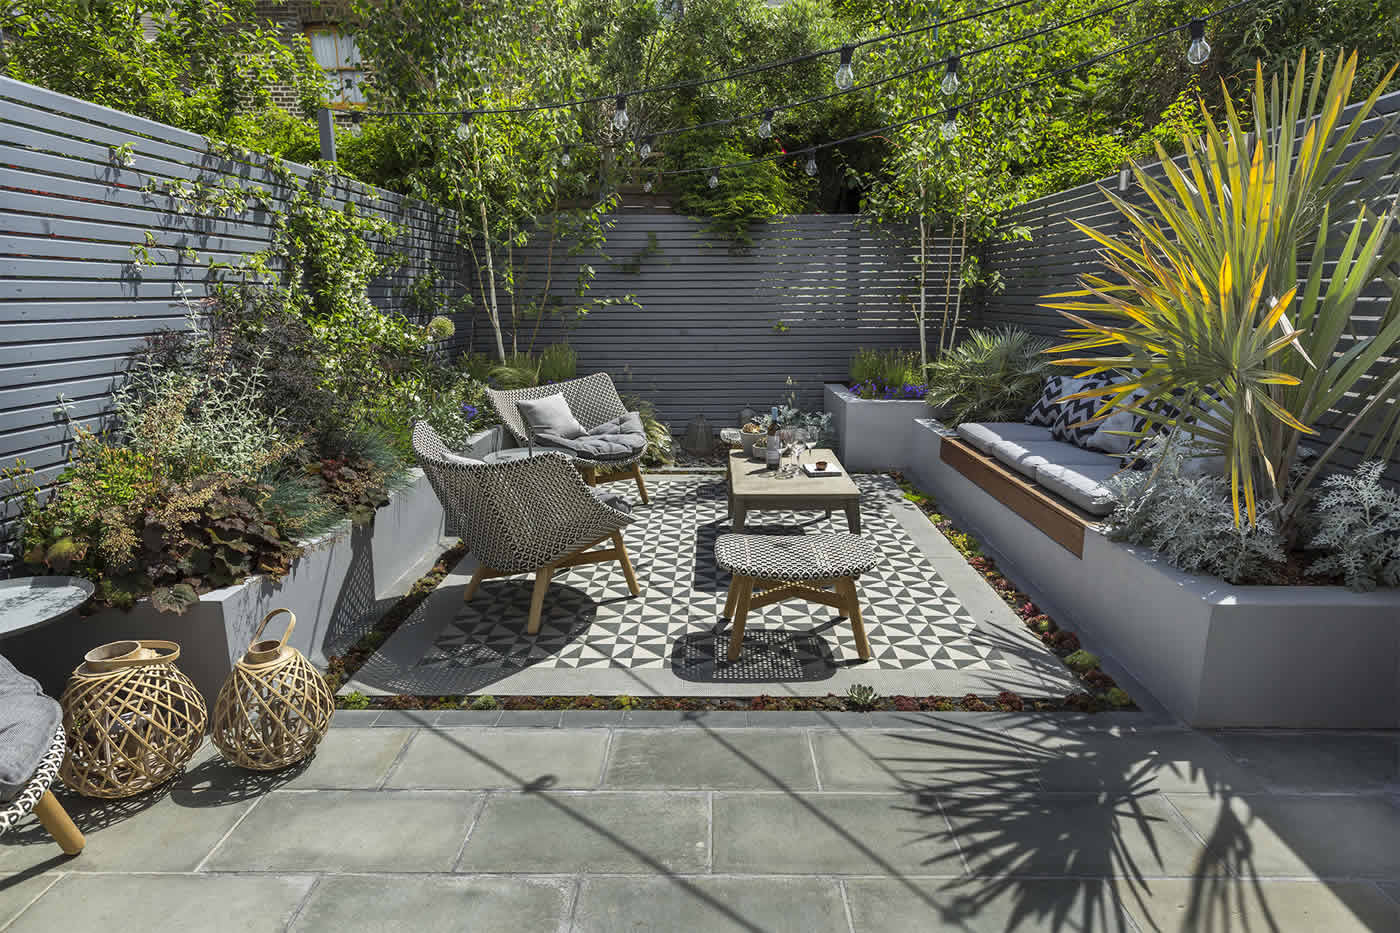 Private Small Garden Design Ideas For This Small South London Courtyard  Garden Evolved From The Clientu0027s